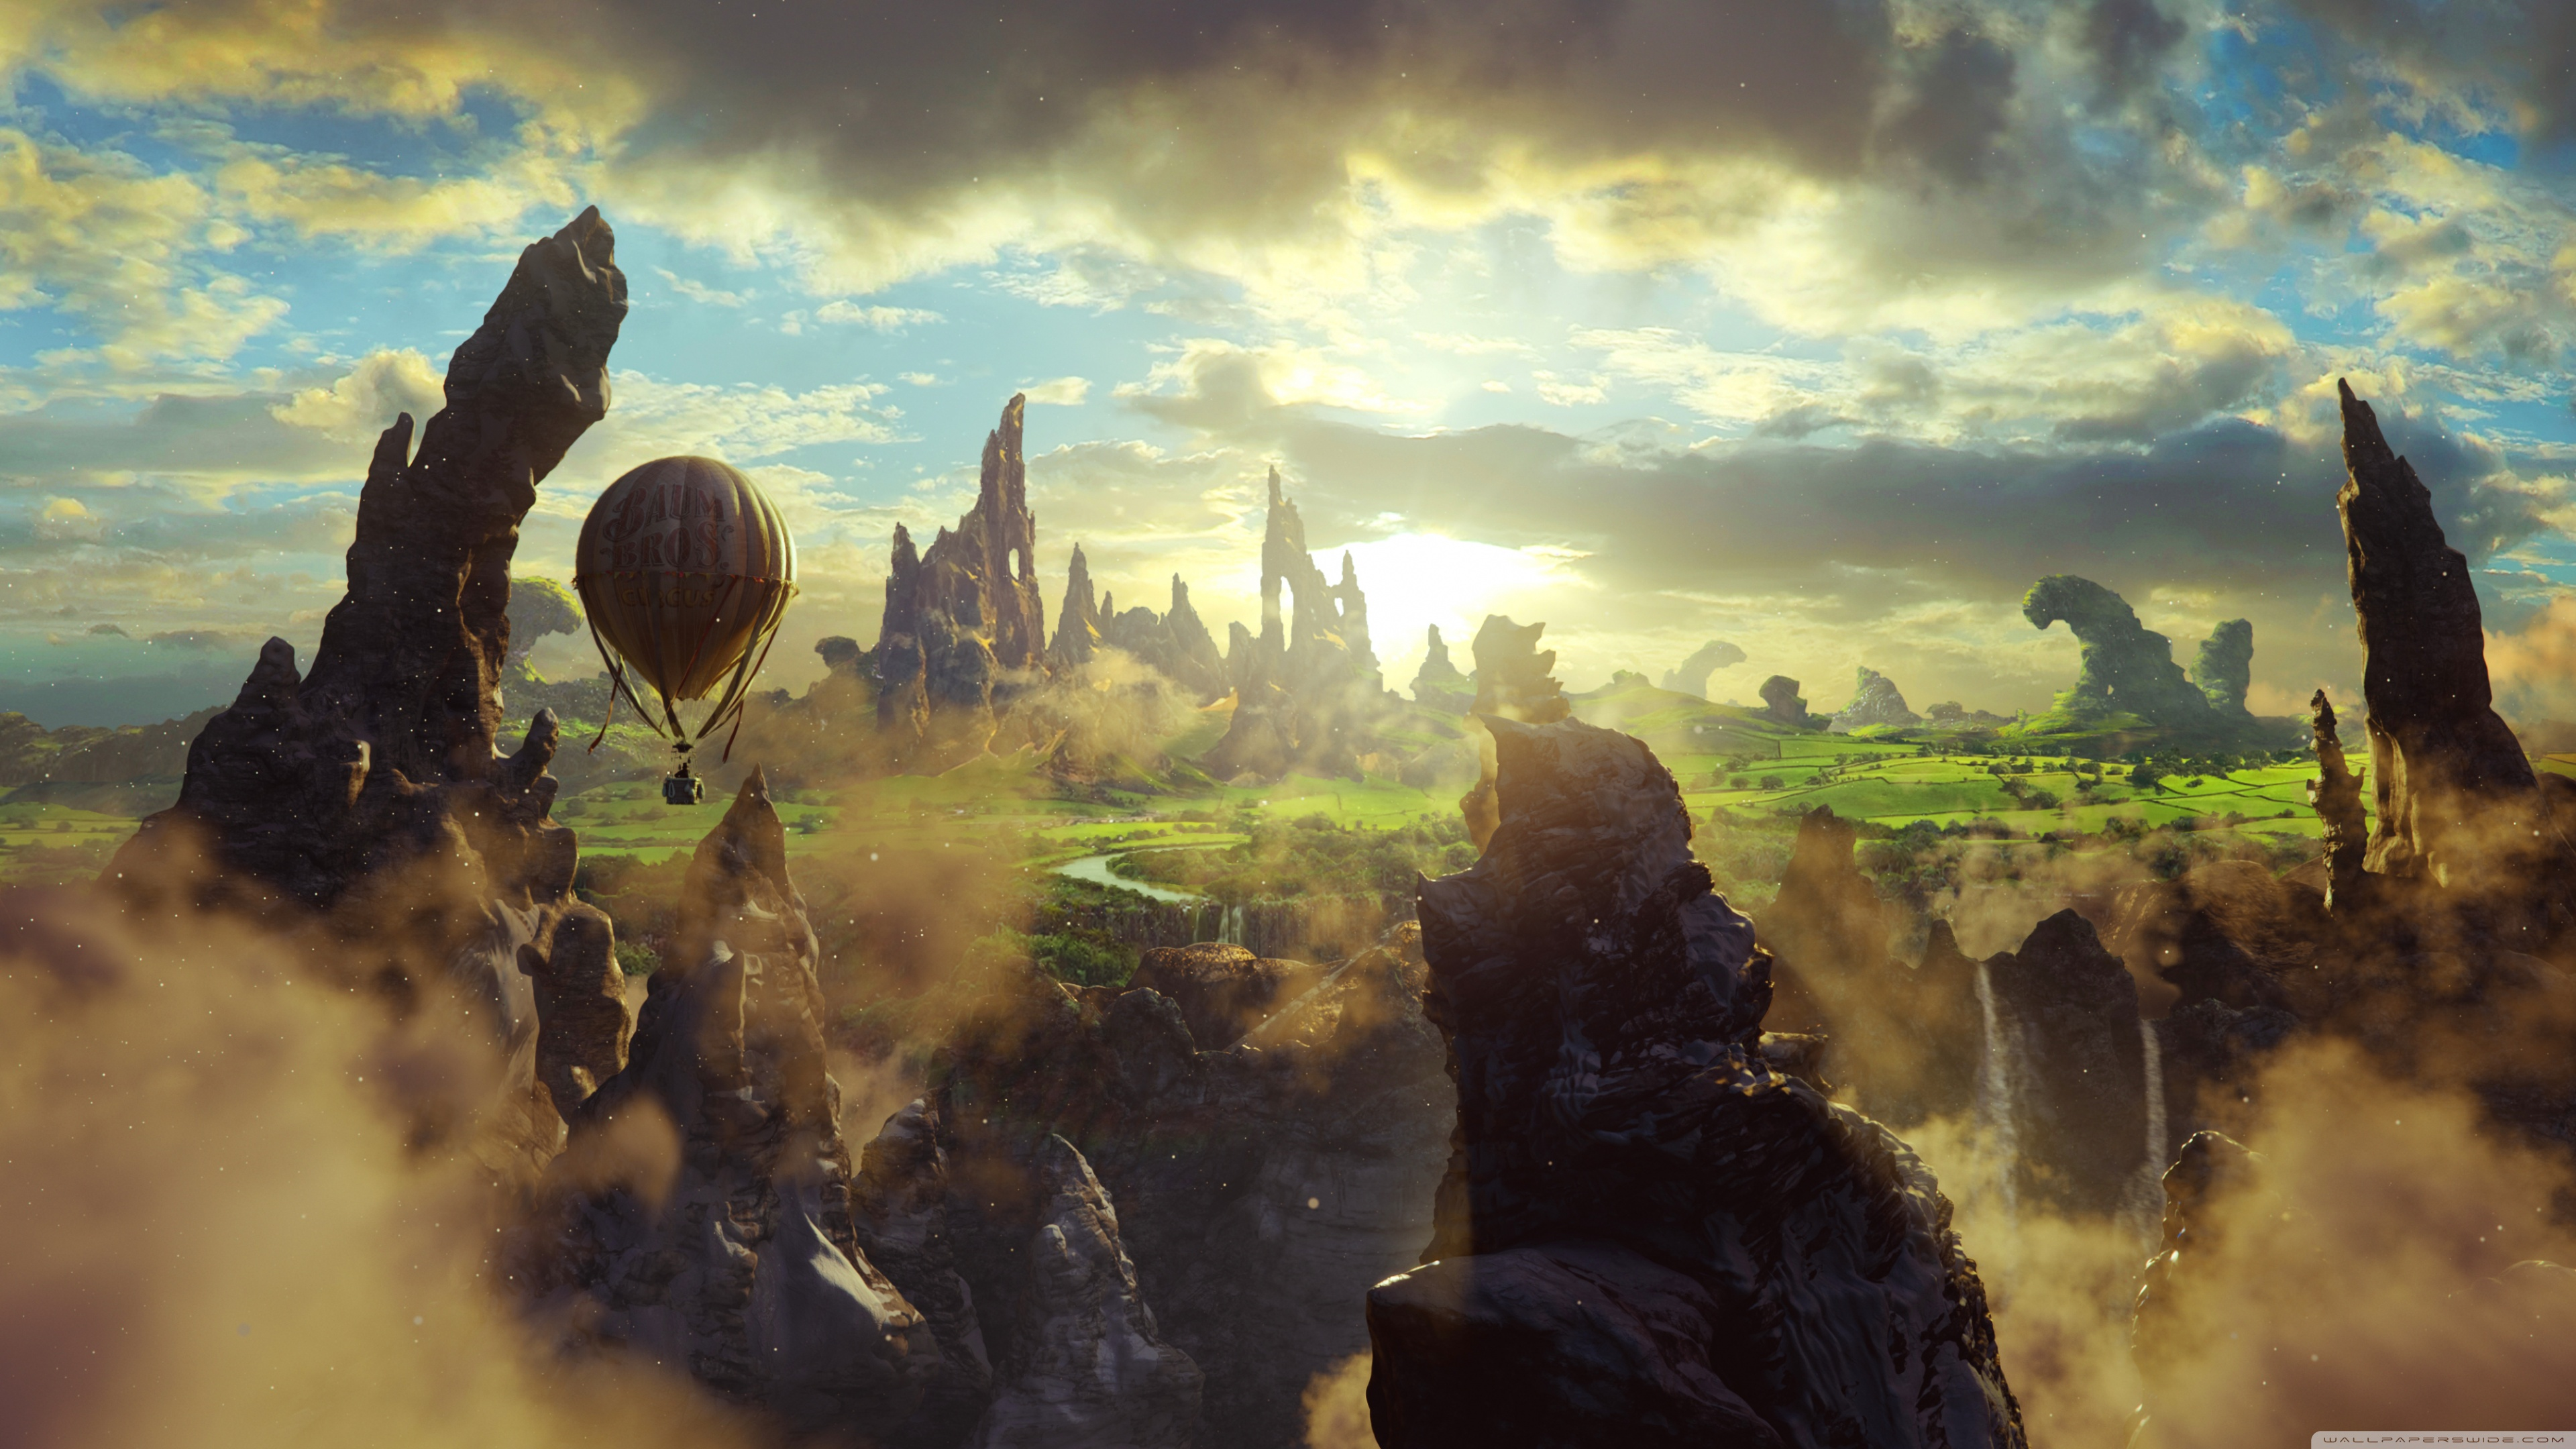 Oz The Great And Powerful 4k Ultra Hd Wallpaper Background Image